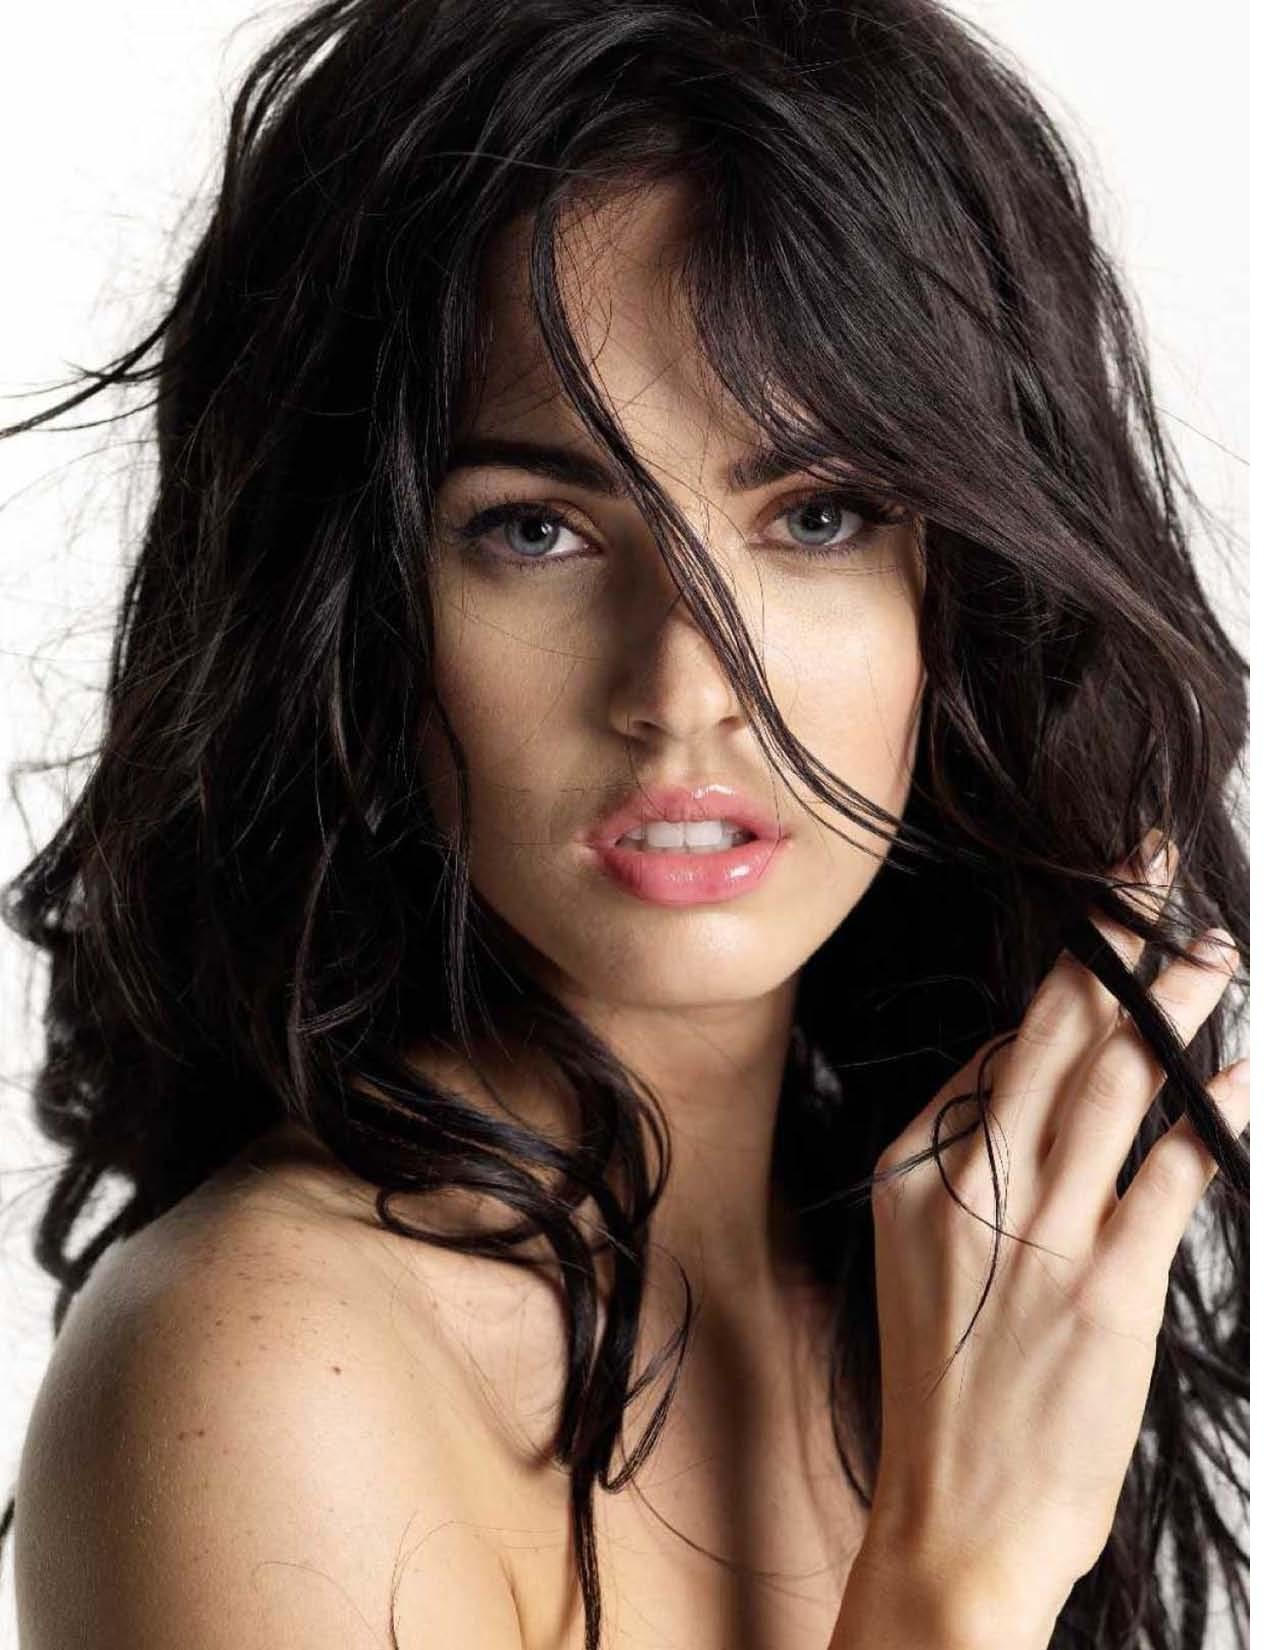 http://s2.picofile.com/file/7714030000/megan_fox_is_hot_3.jpg